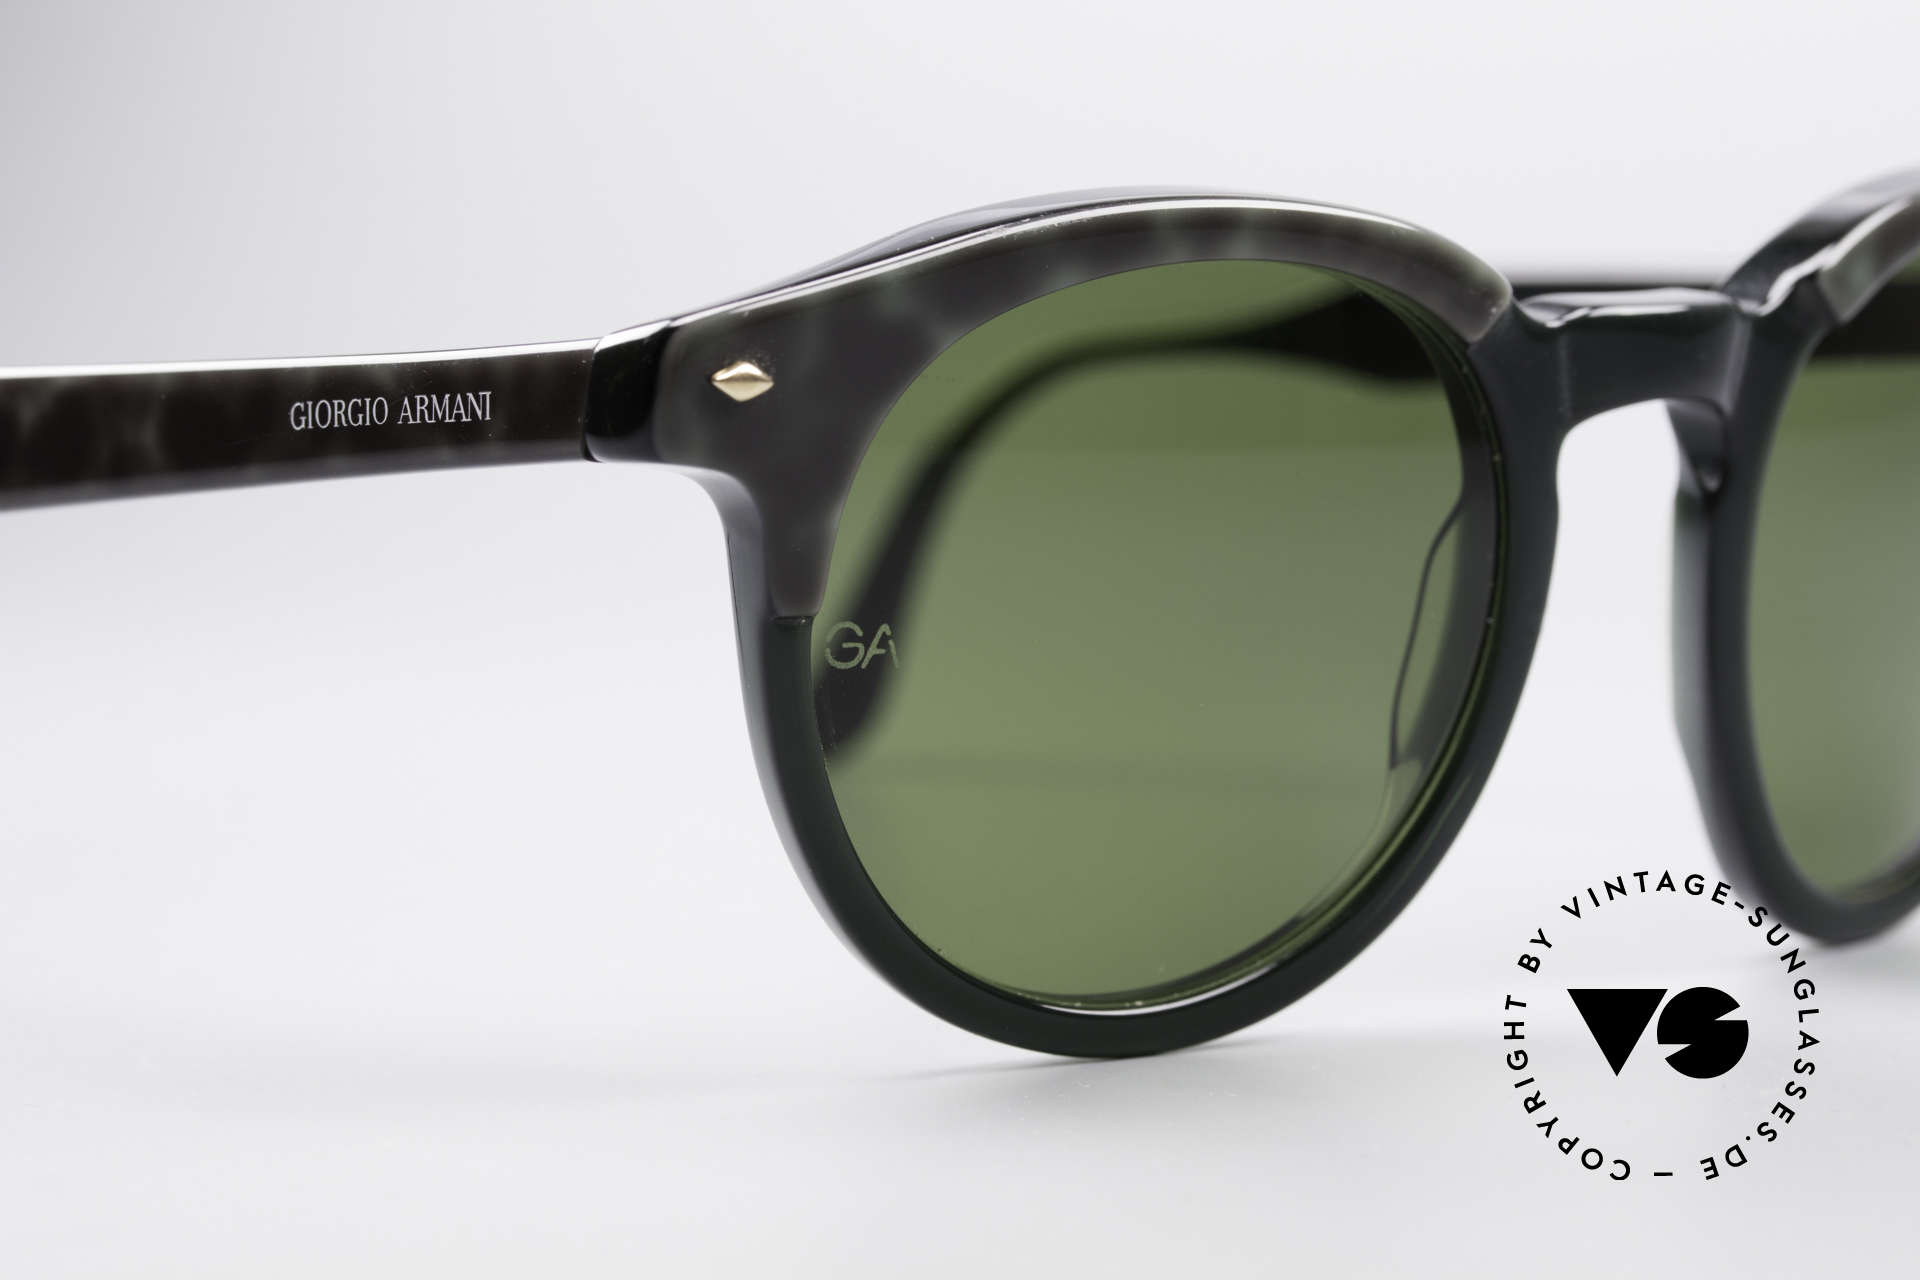 Giorgio Armani 901 Johnny Depp Sunglasses, mineral sun lenses and frame pattern in marbled-green, Made for Men